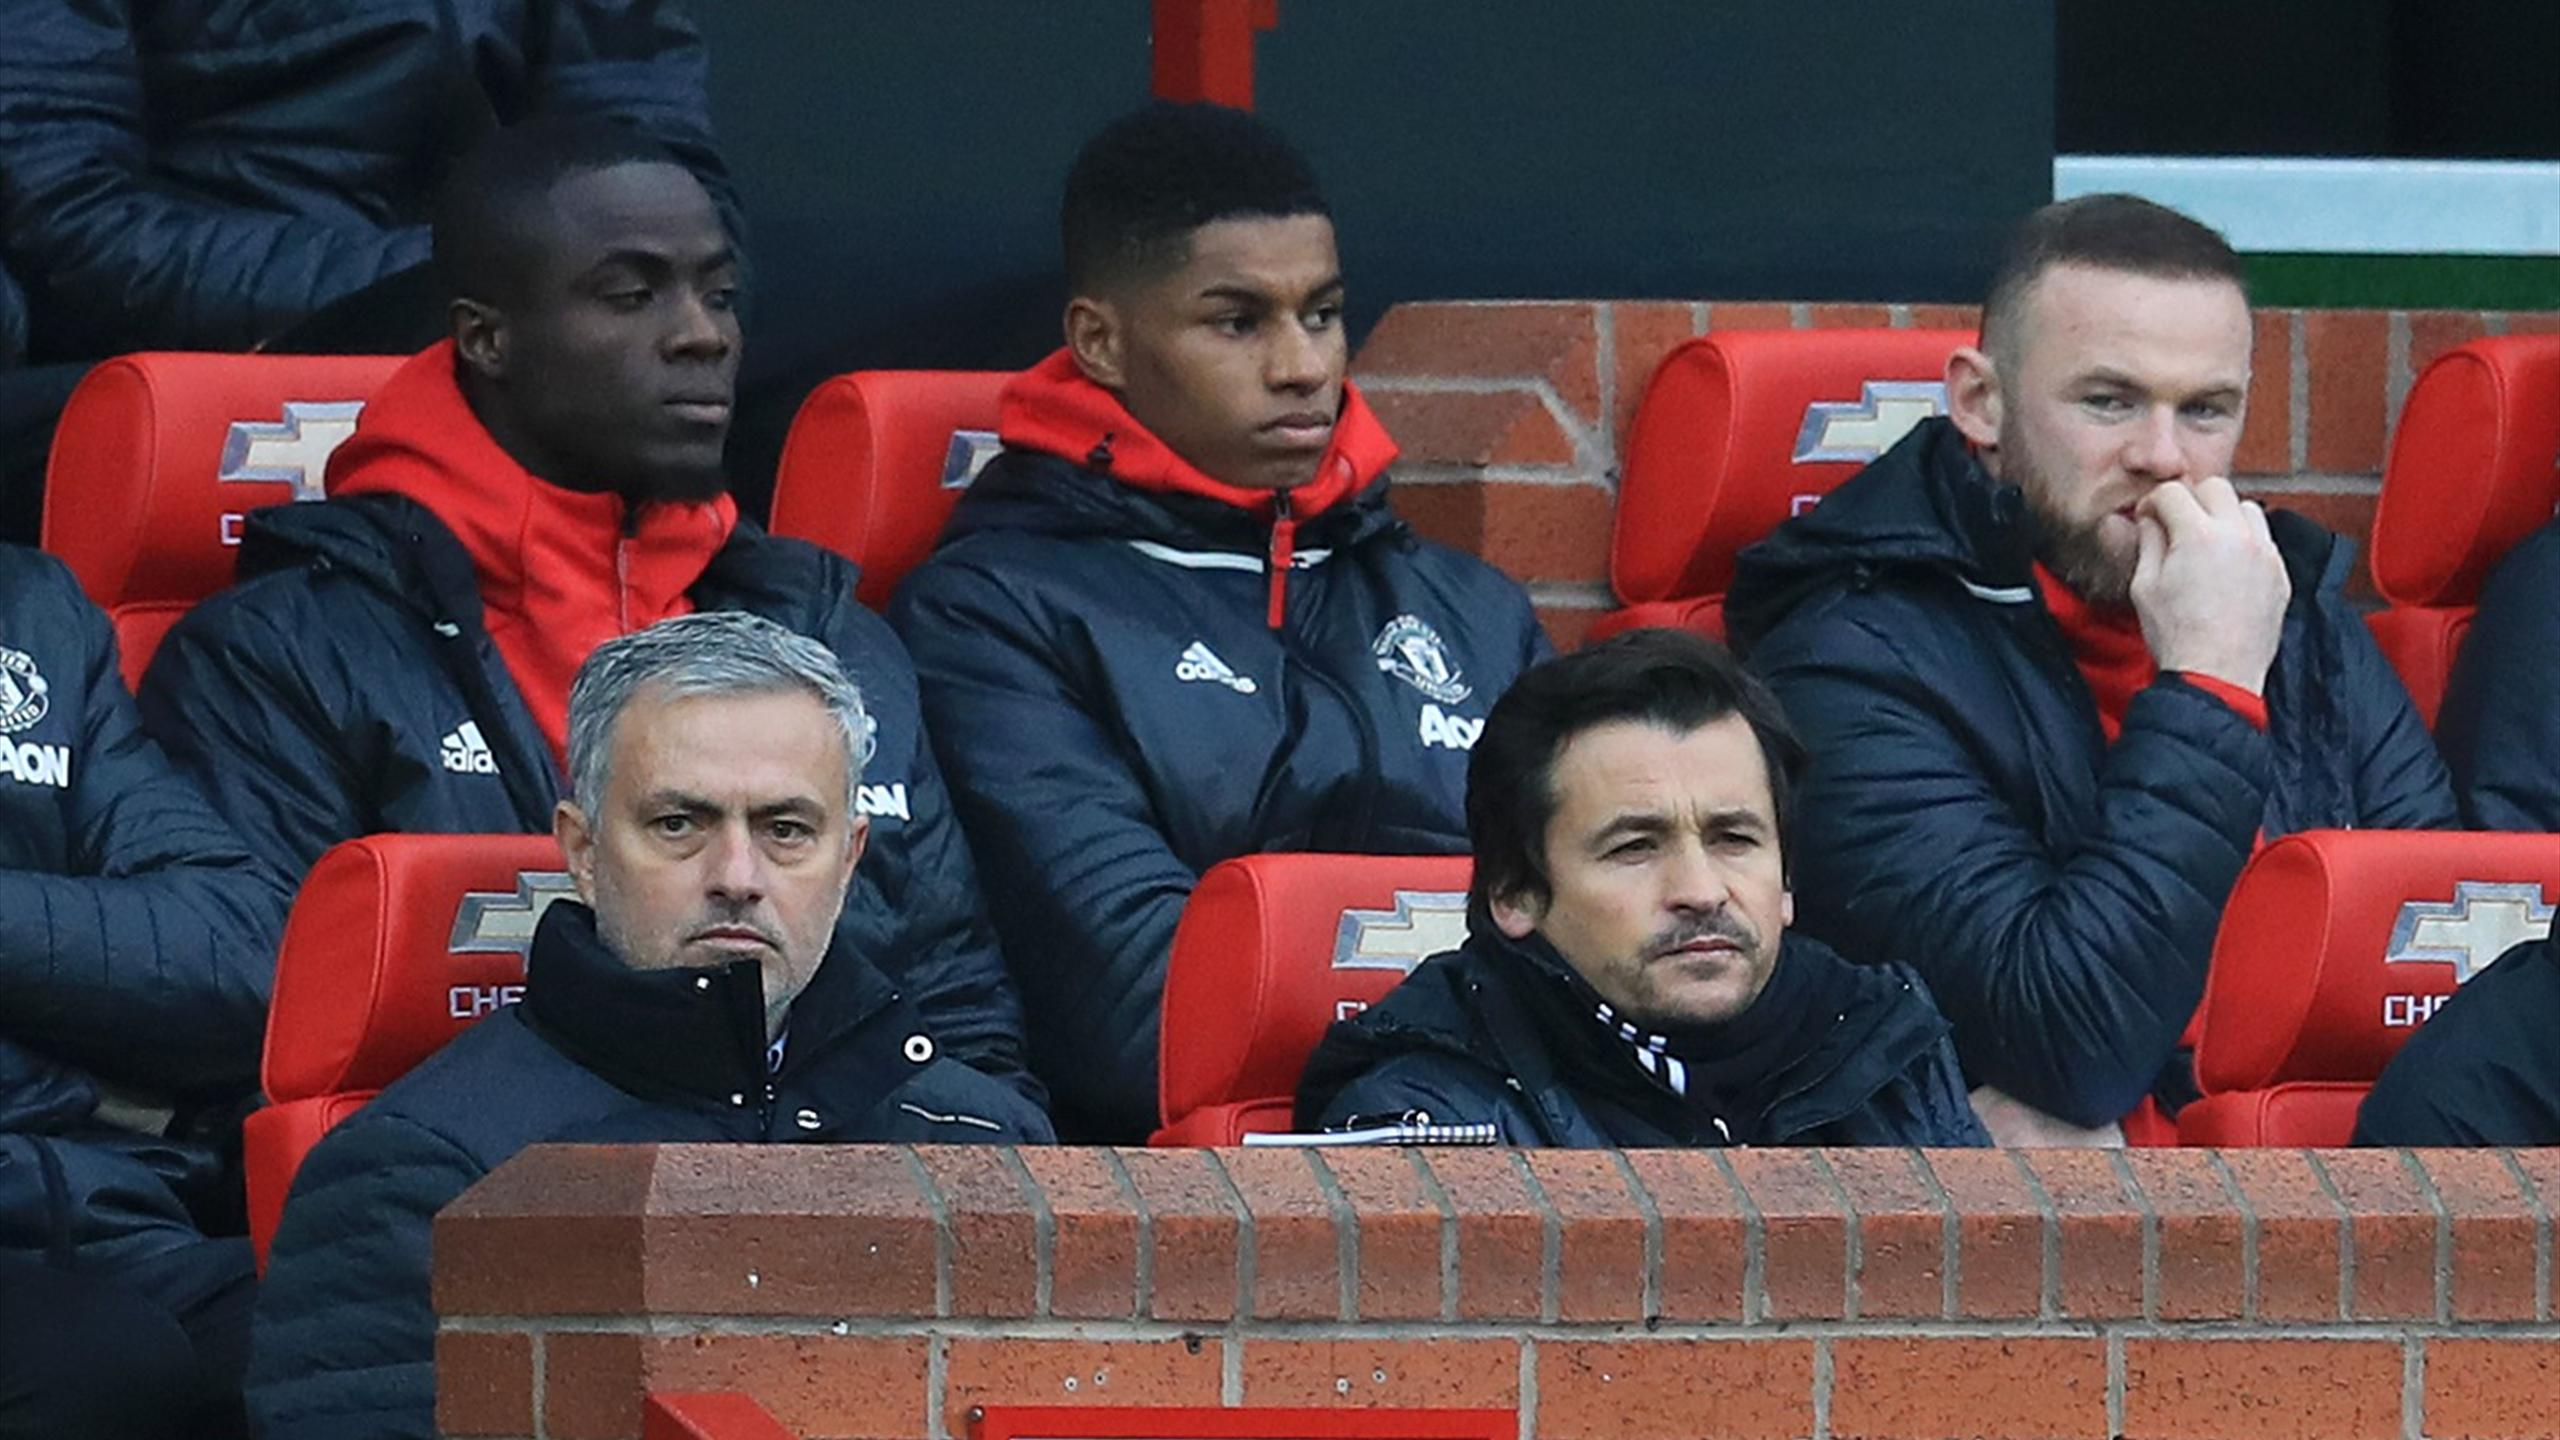 Manchester United manager Jose Mourinho (front left) on the bench next to assistant Rui Faria (front right), Eric Bailly (back left), Marcus Rashford (back centre) and Wayne Rooney